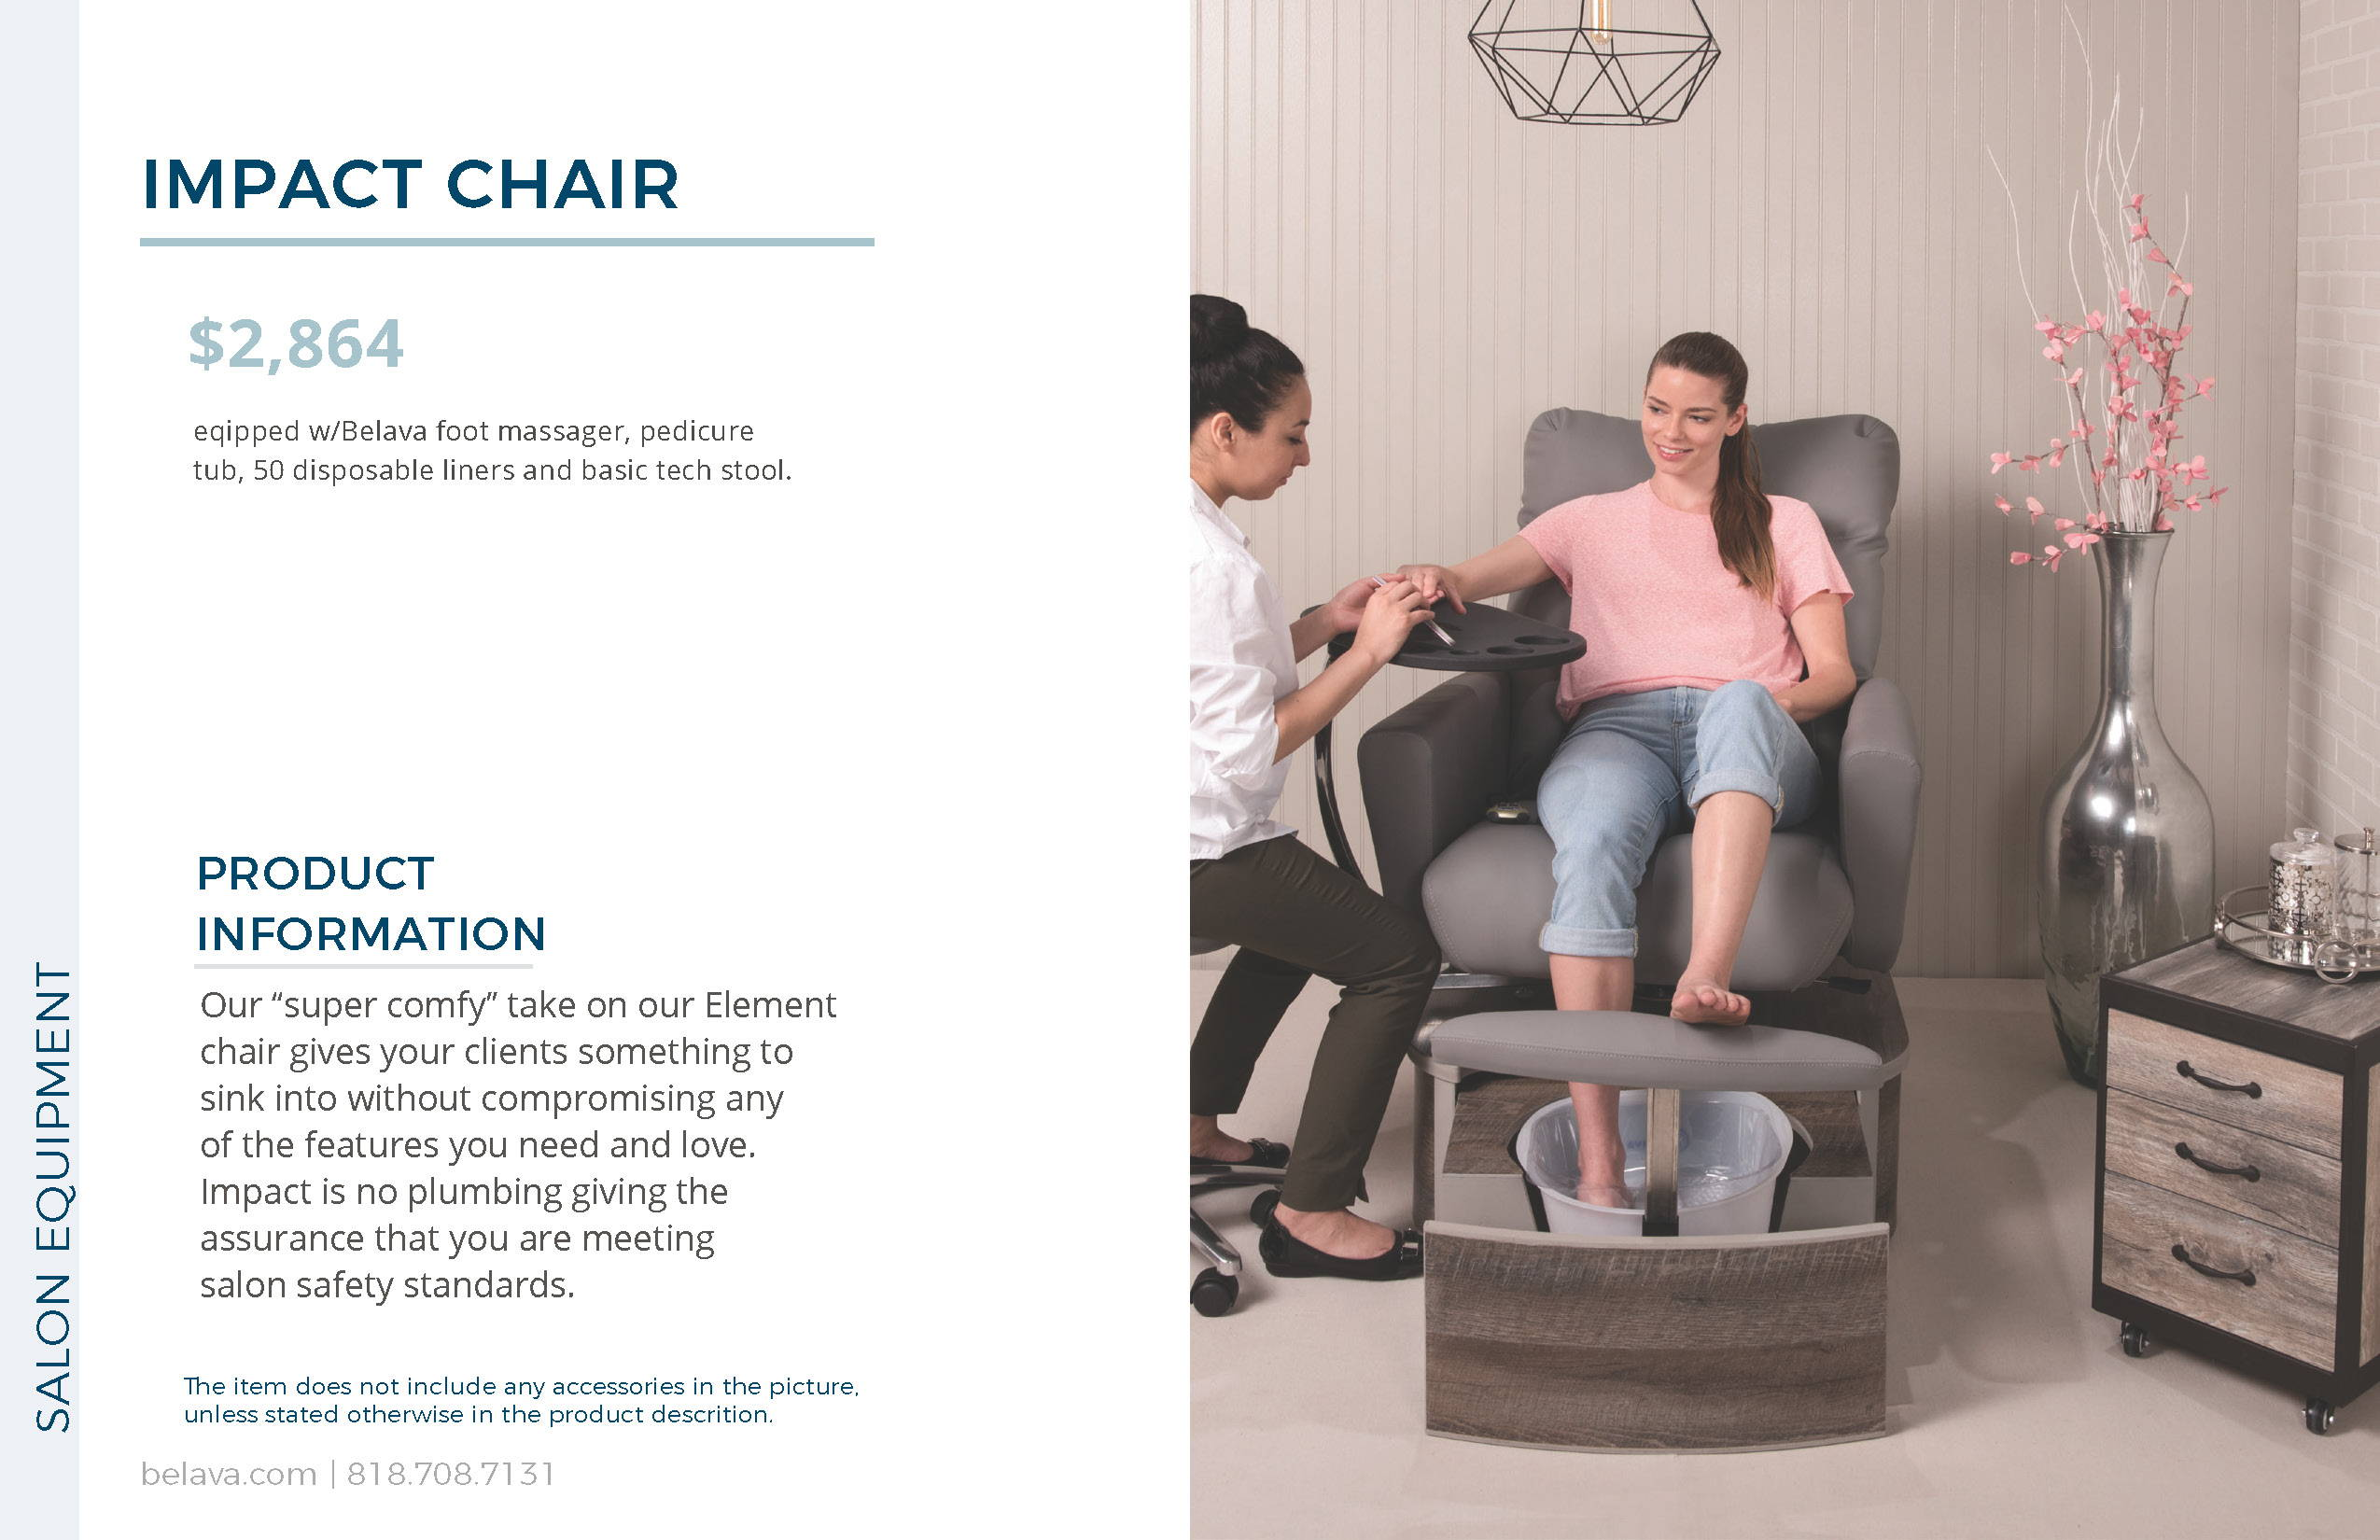 Impacts Pedicure Chair by Belava